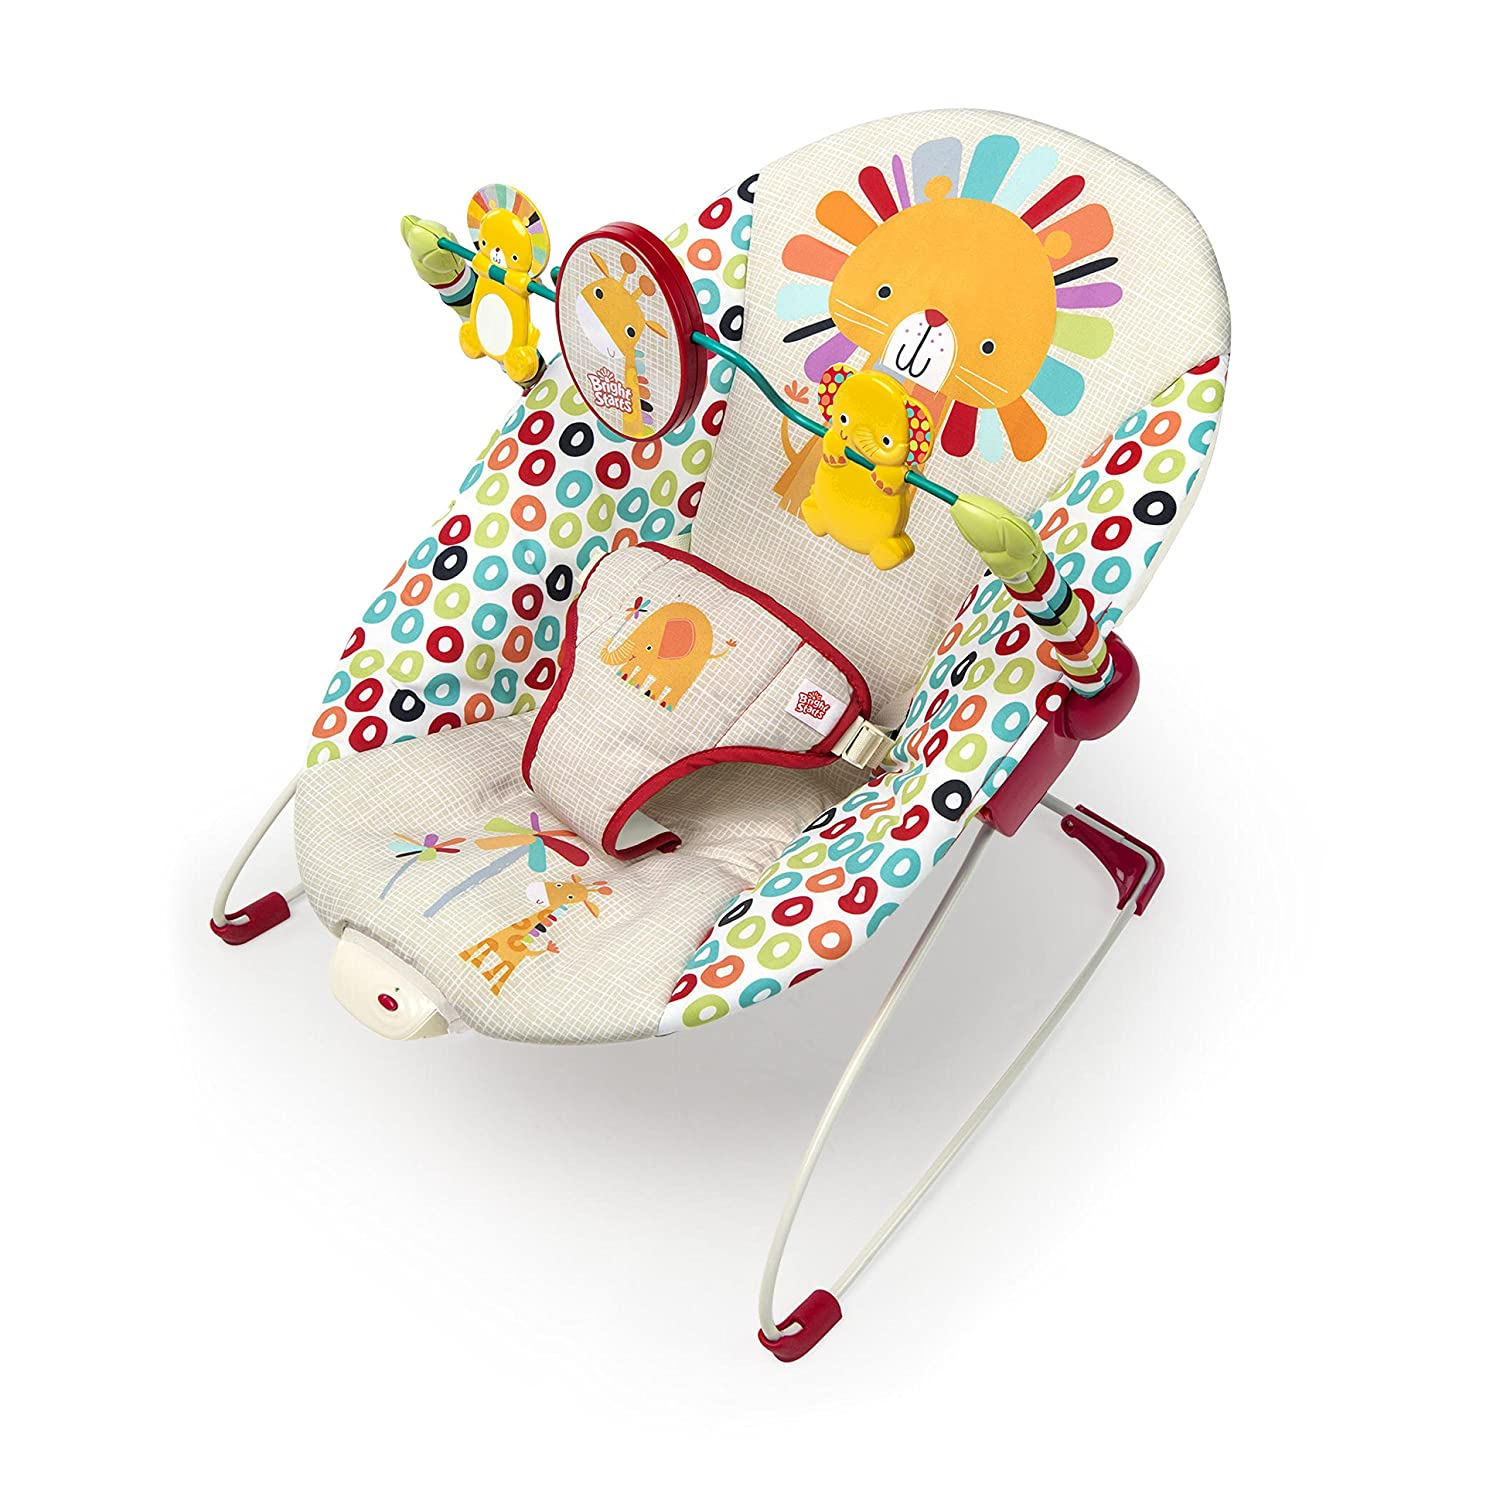 Bright Starts Playful Pinwheels Interactive Baby Bouncer with Soothing Vibration to Calm Baby Bríght Starts